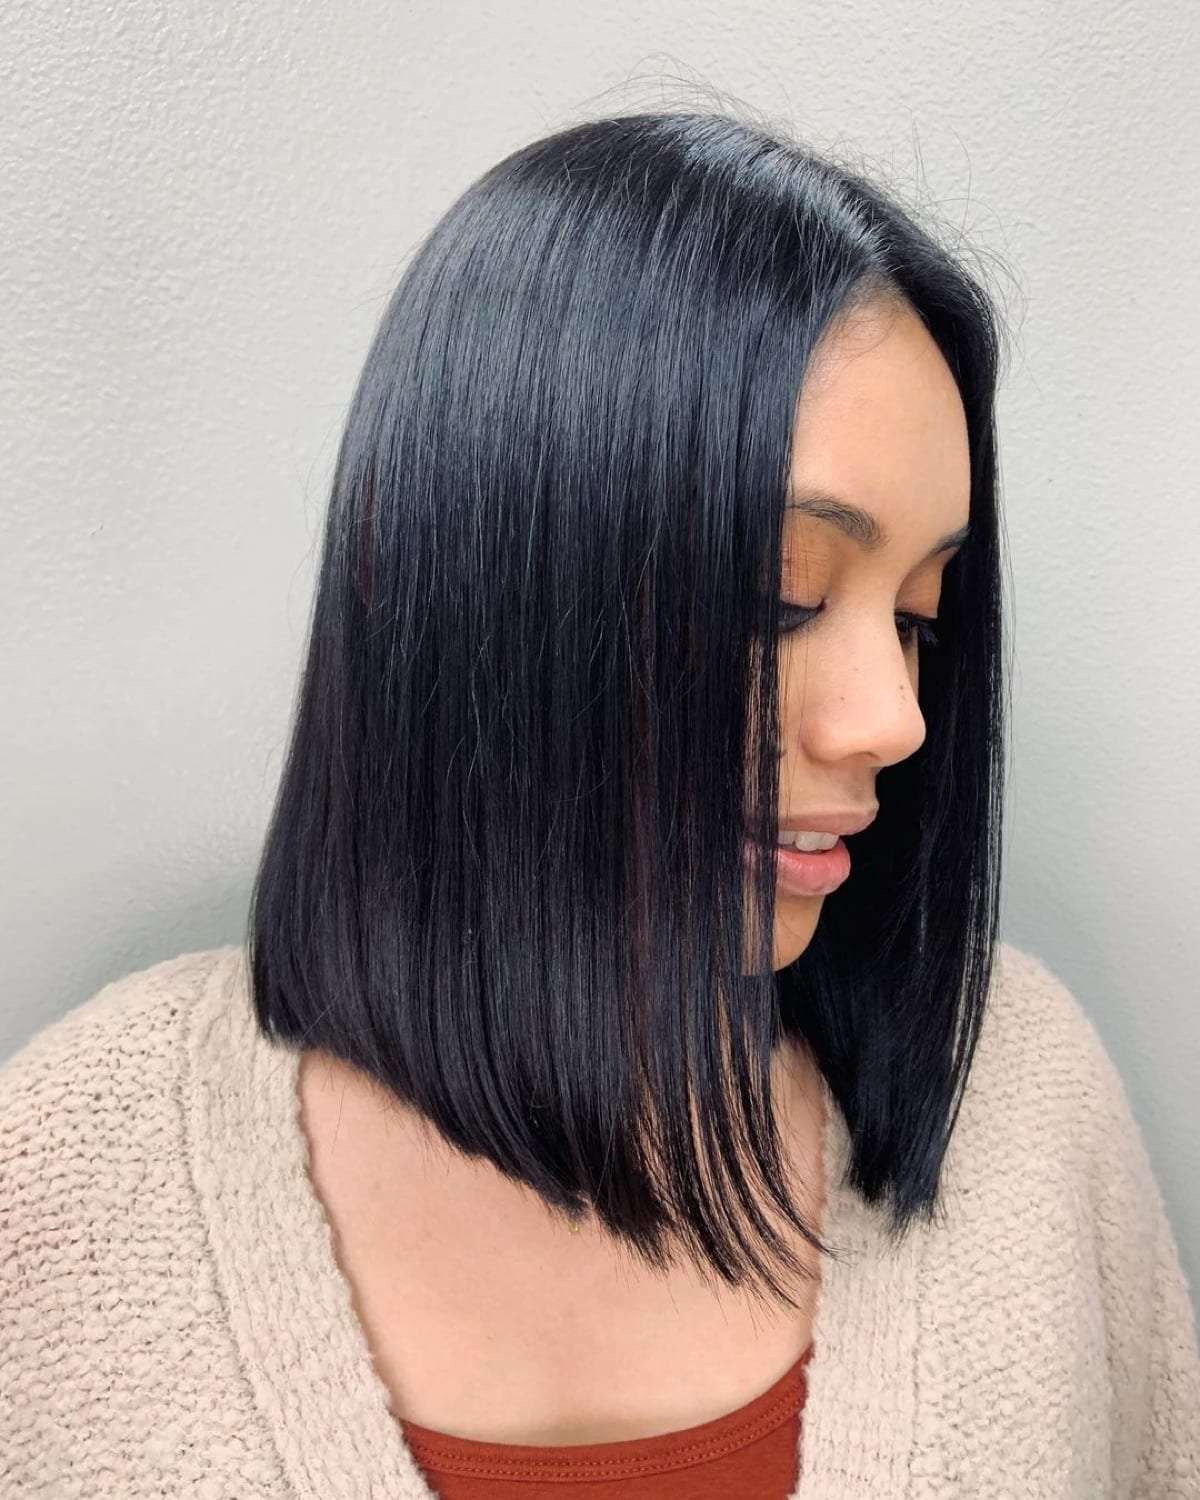 9 Best Blunt Cut Bob Haircuts for Every Face Shape